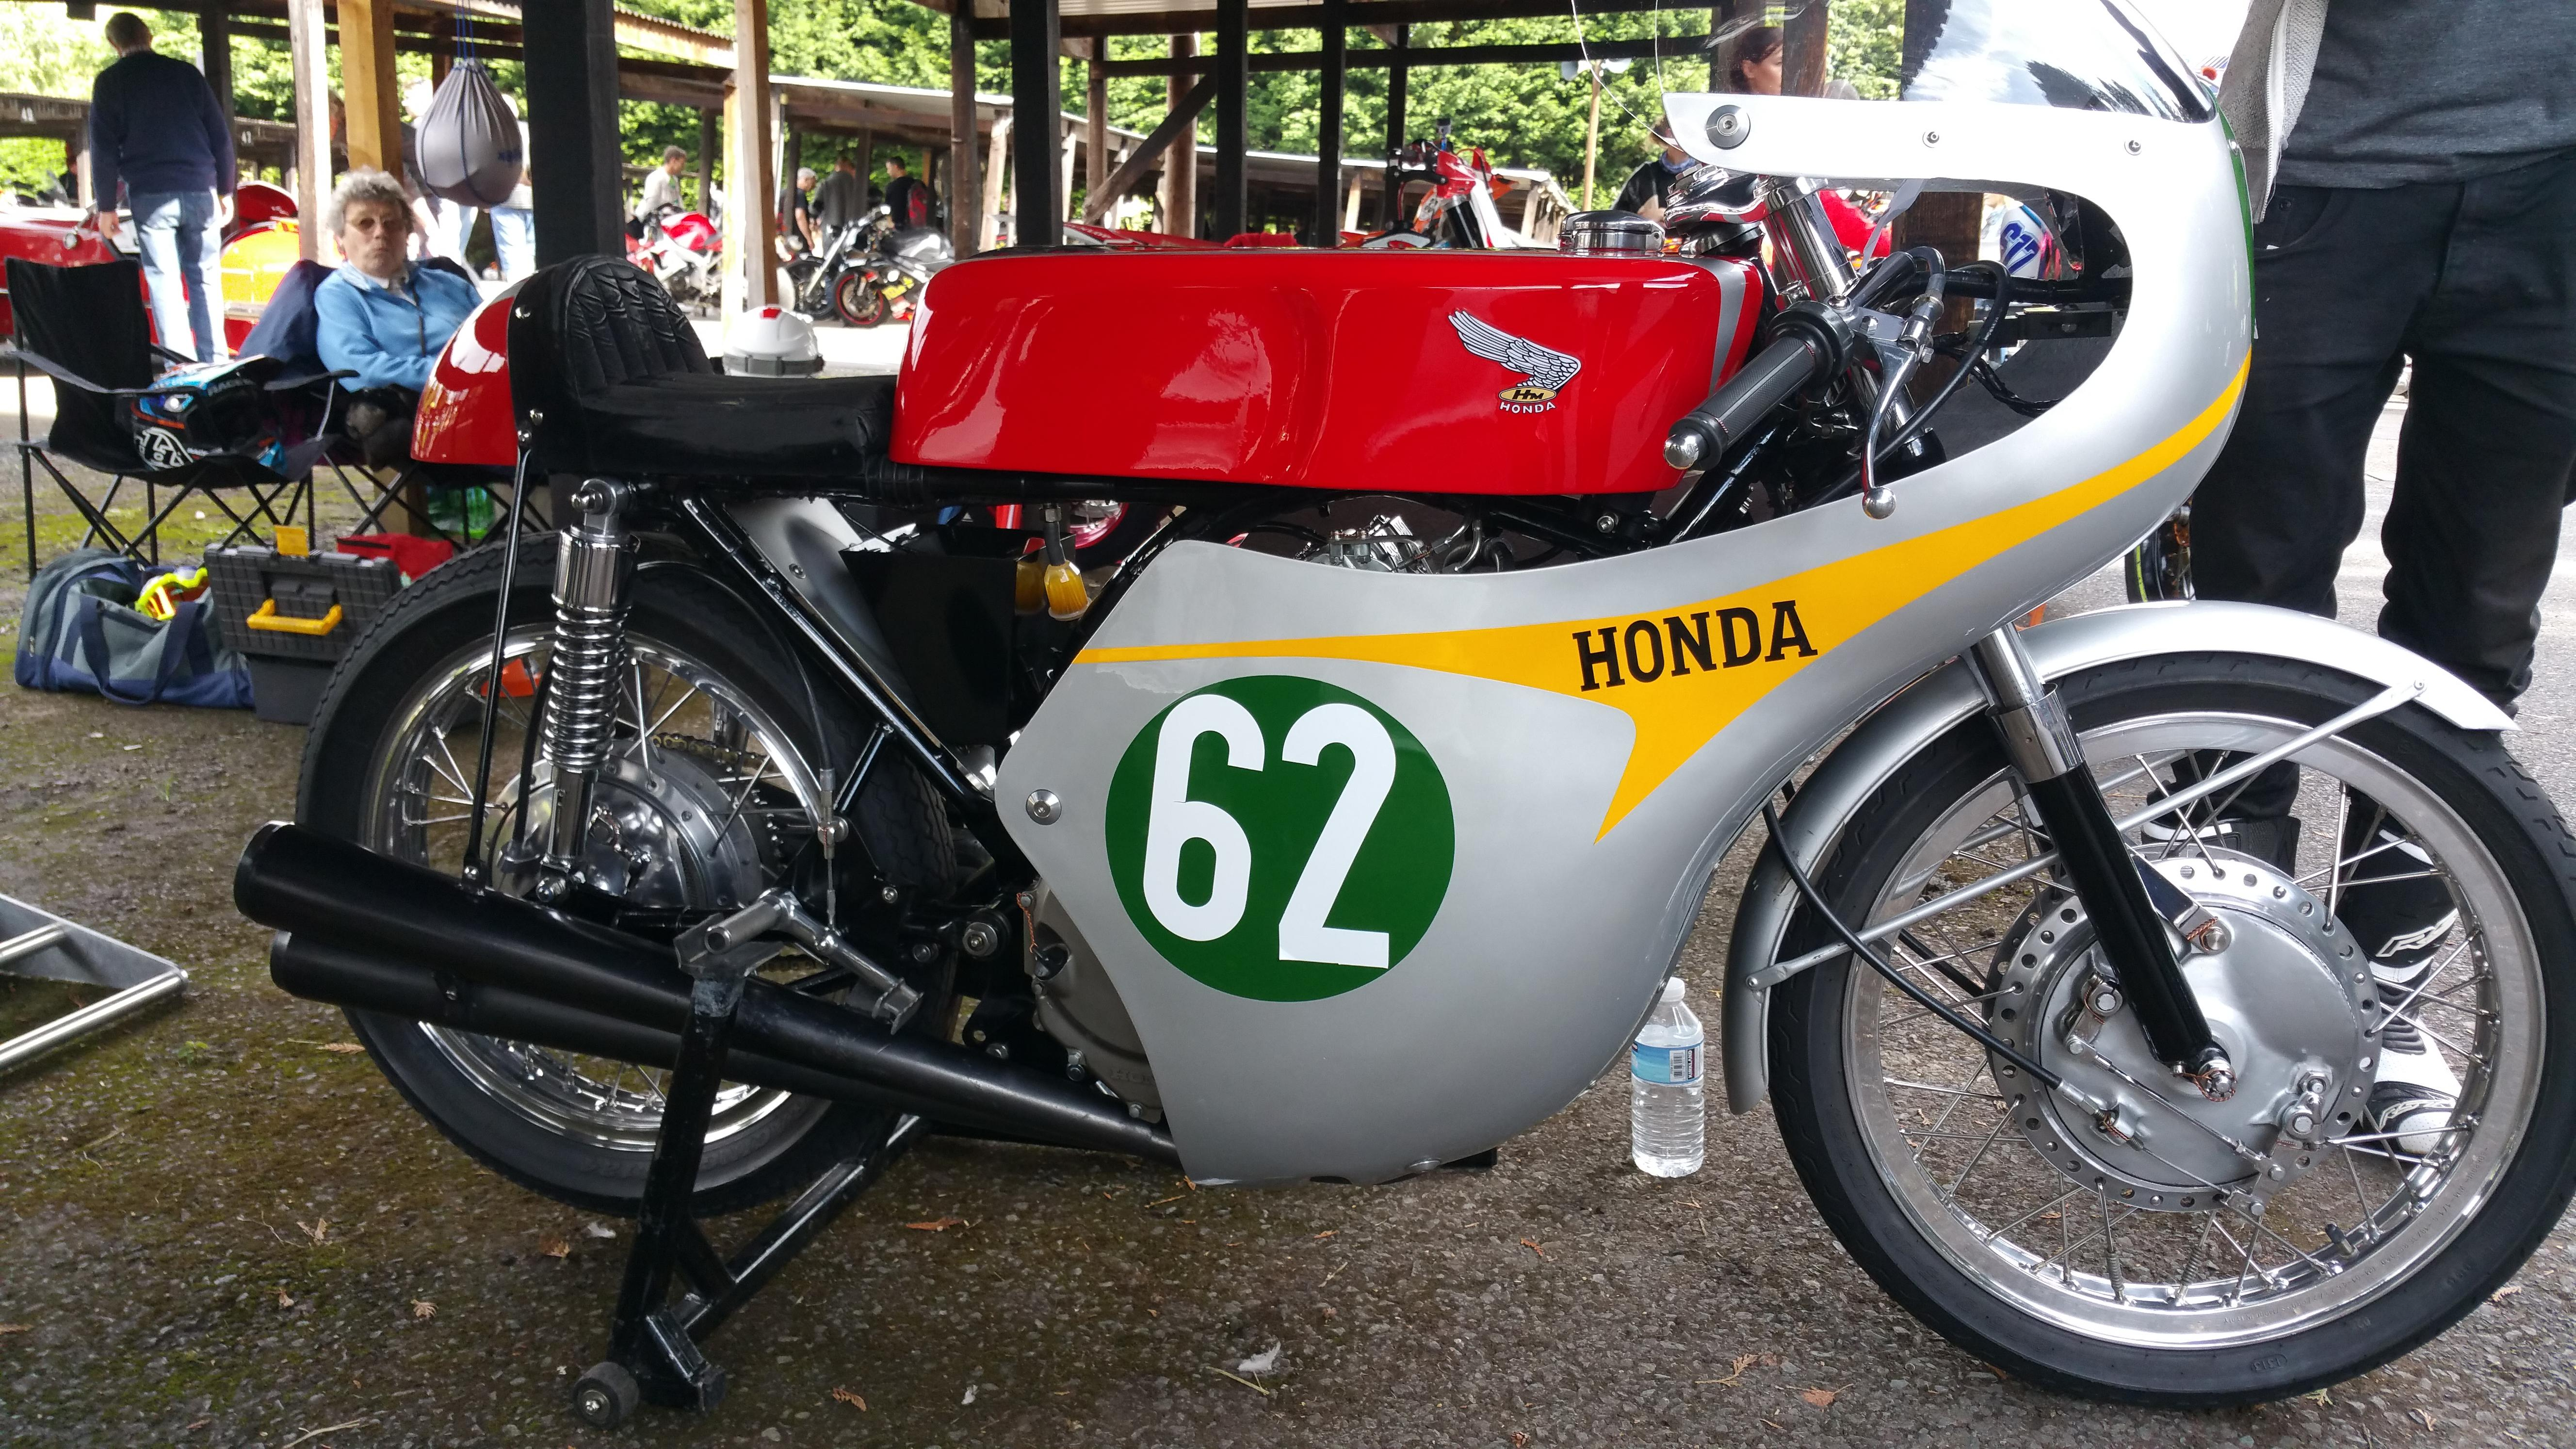 Now This Is What I Call A CB250 Cafe Racer